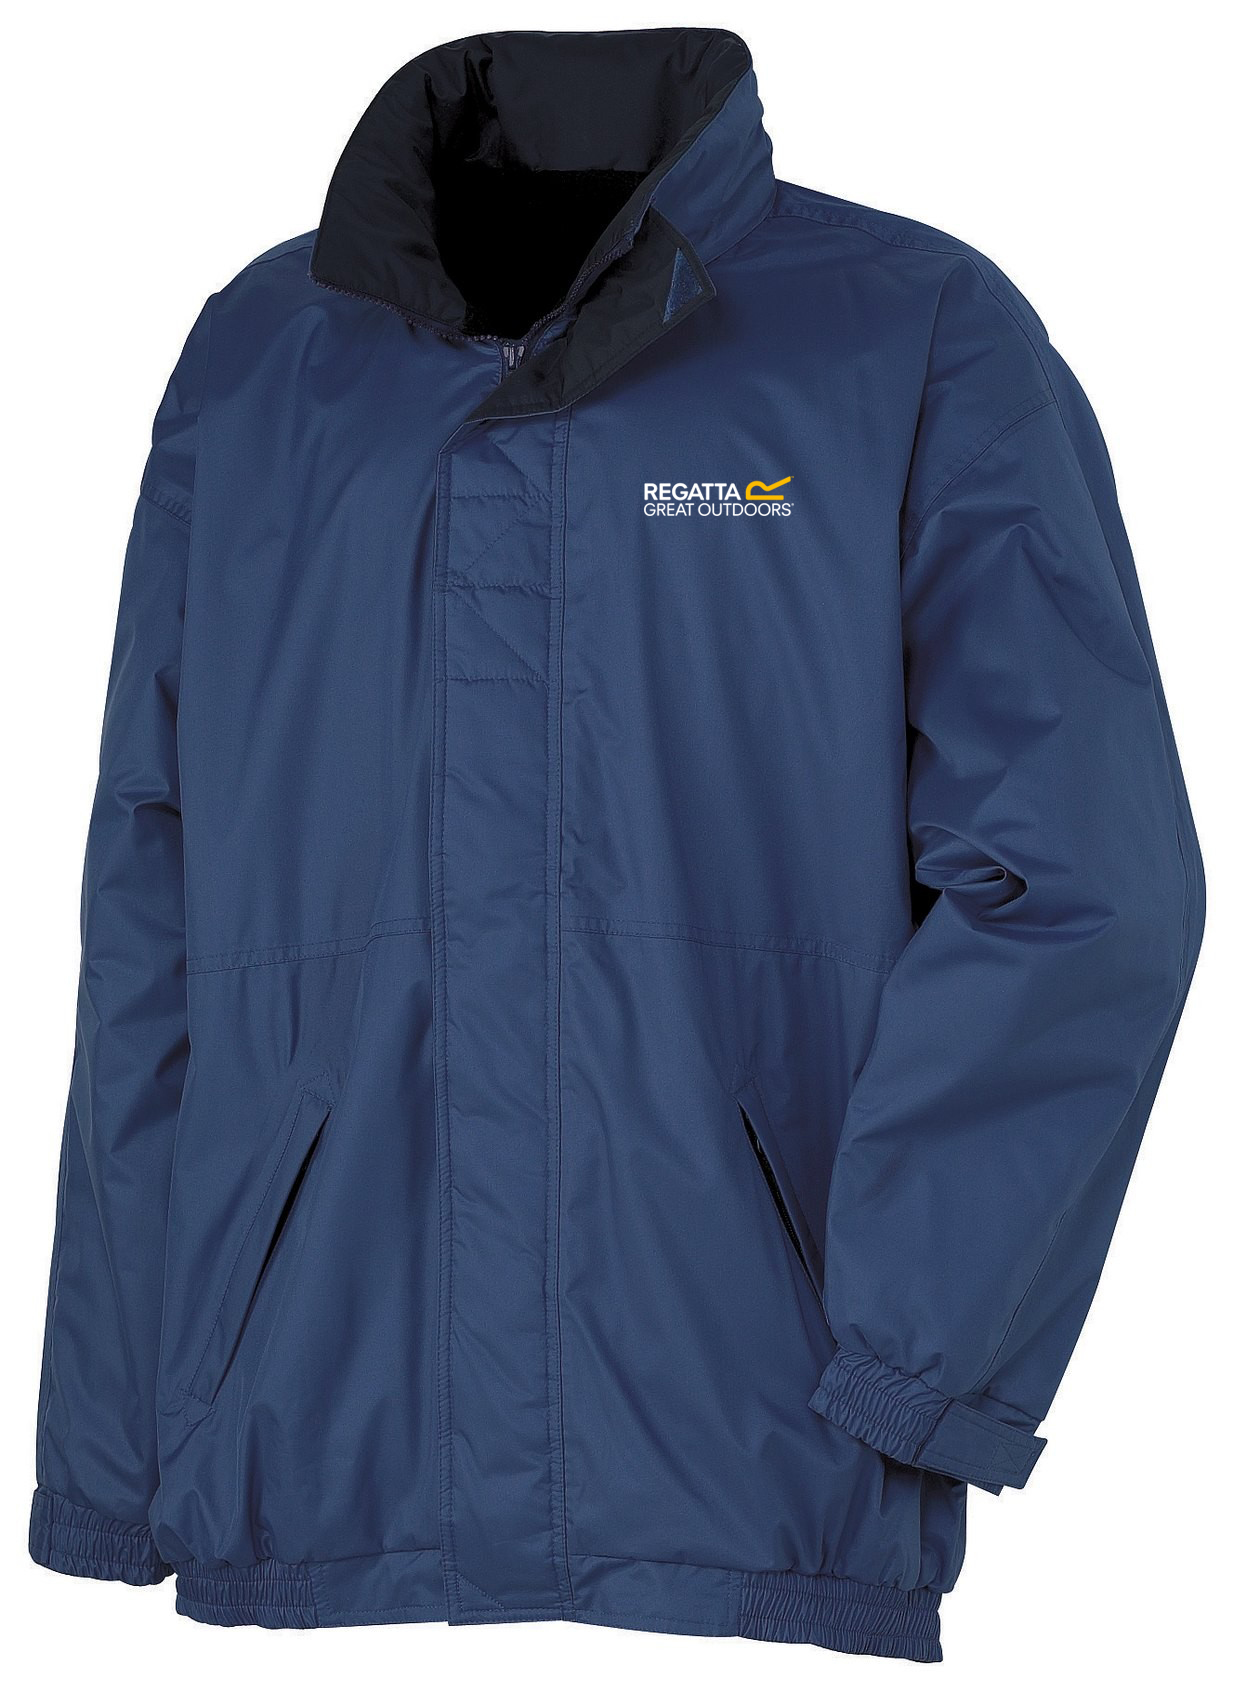 Regatta-Dover-amp-Bomber-Mens-Fleece-Lined-Windproof-Waterproof-Jacket-RRP-70 thumbnail 10